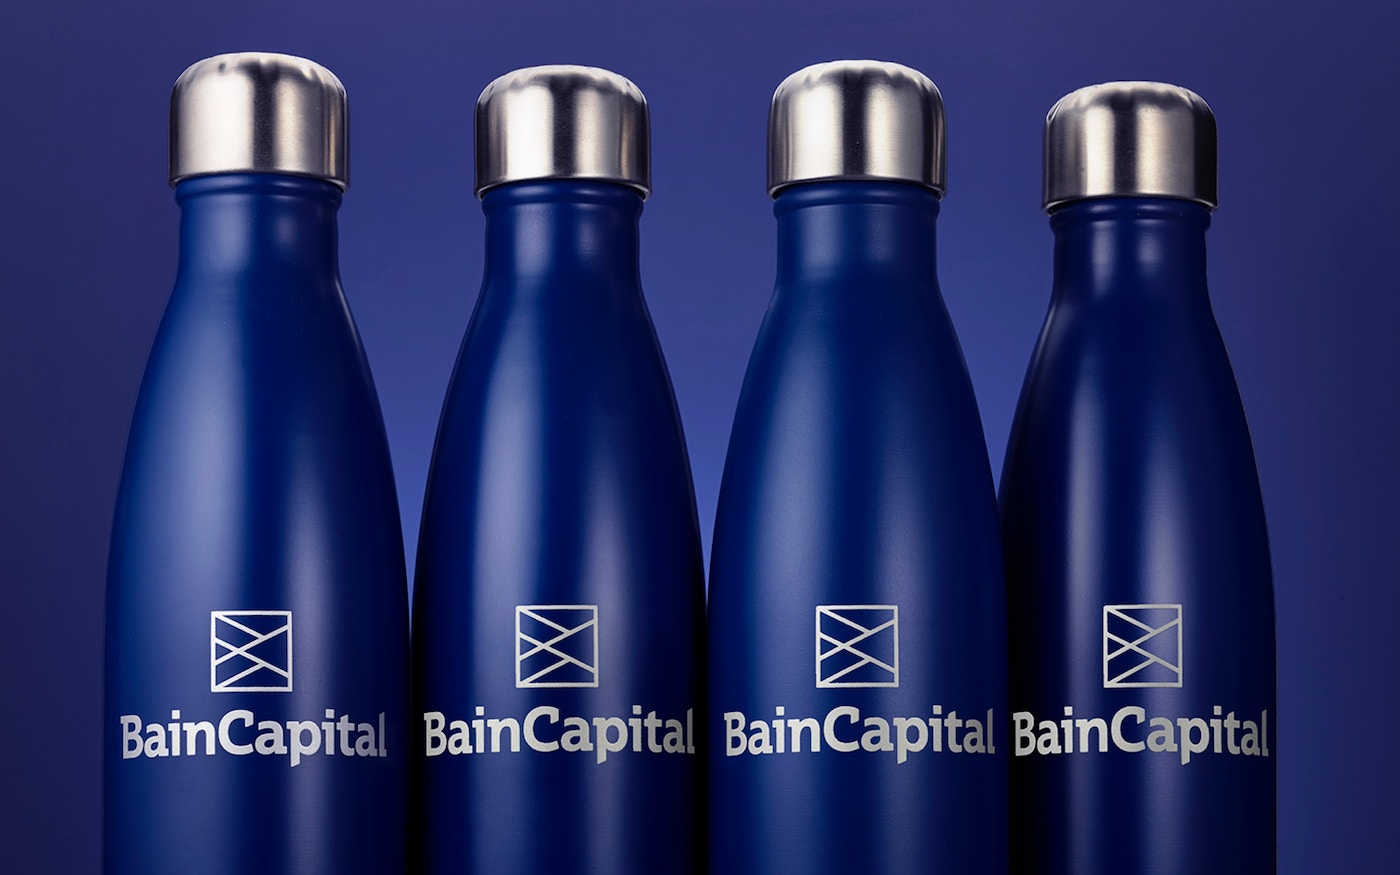 Bain Capital branded water bottles